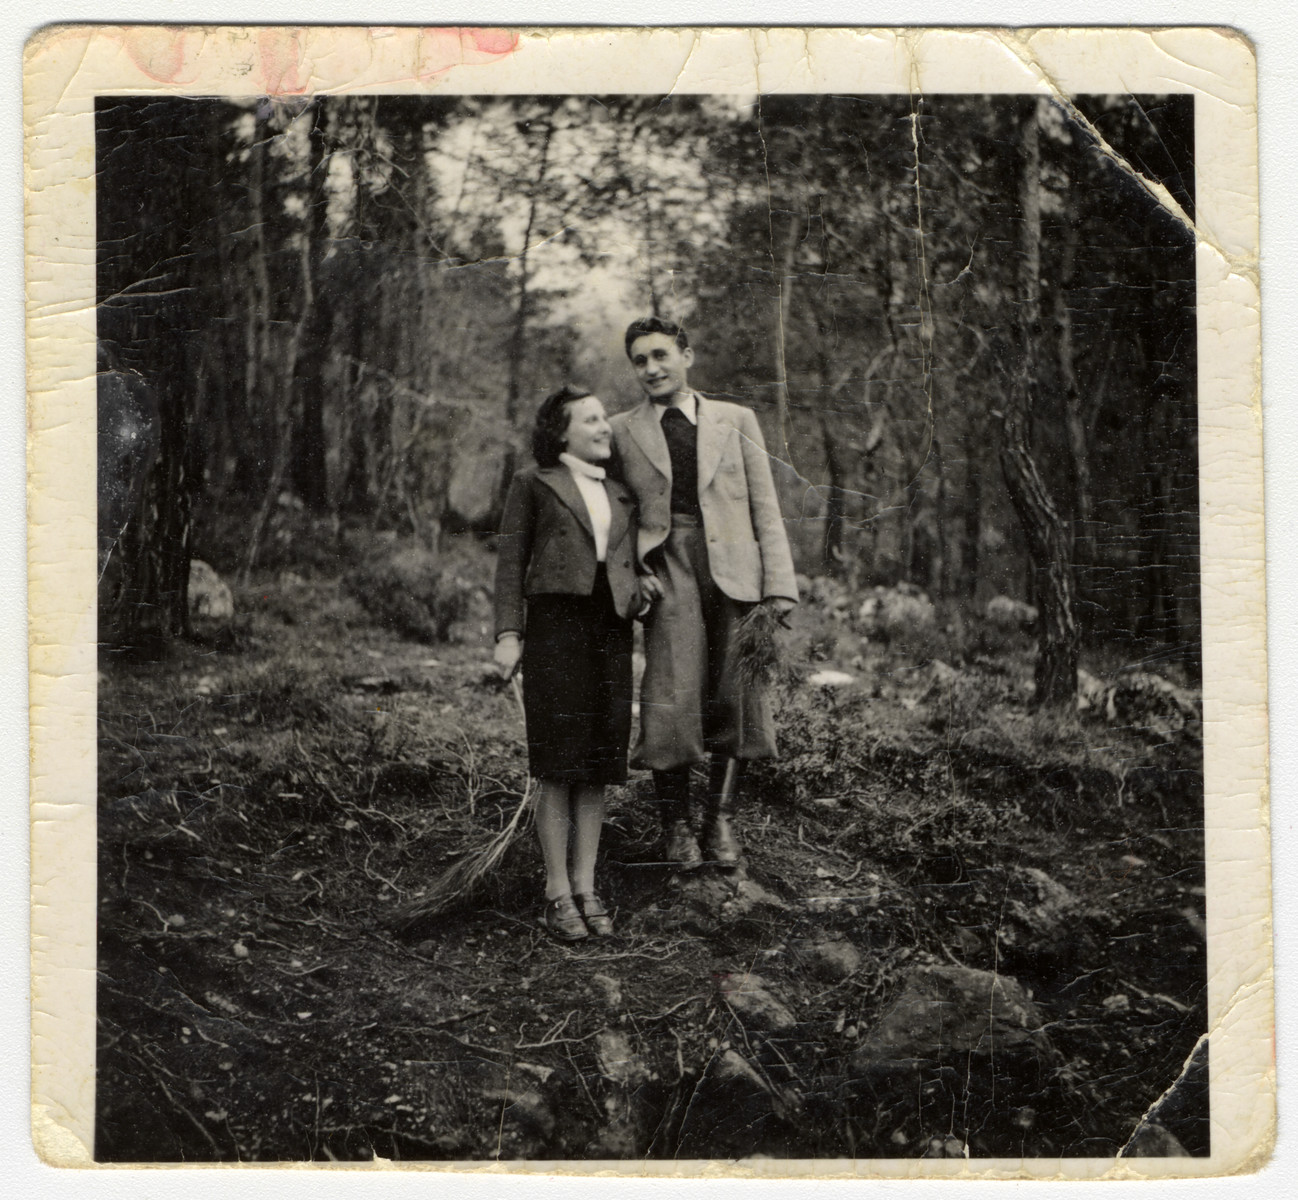 Austrian Jewish refugees, Lily and Kalman Haber, go on an excursion in a forest in Cyprus.